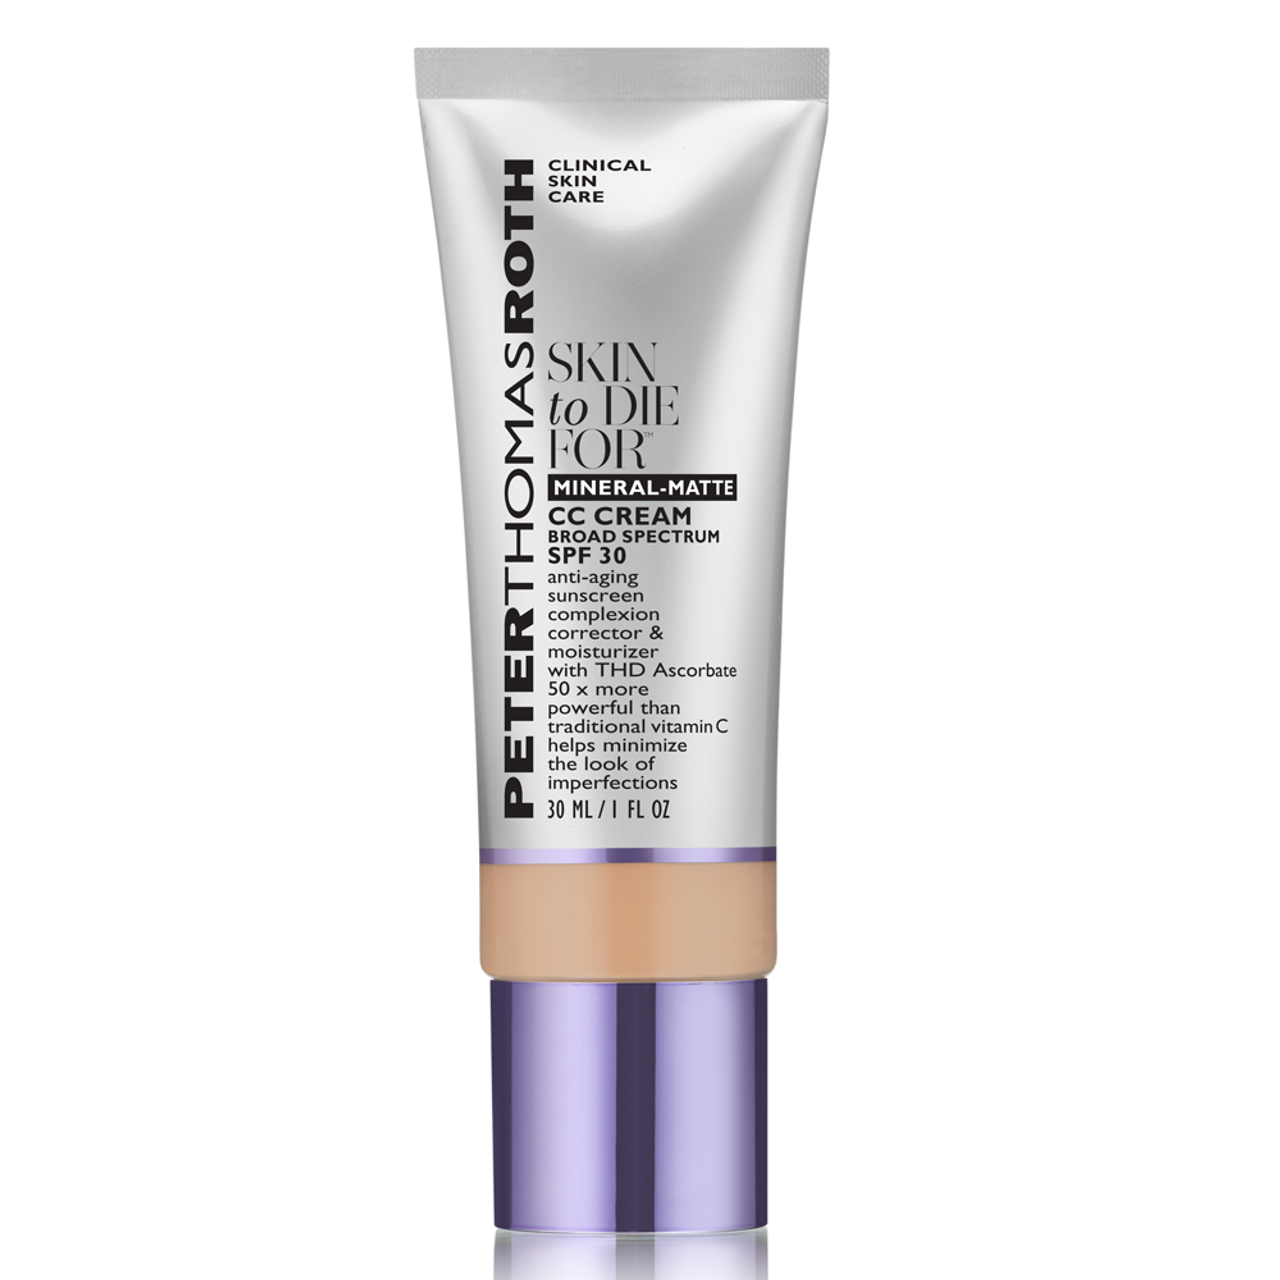 Peter Thomas Roth Skin to Die for Natural Matte Skin Perfecting CC Cream (discontinued) BeautifiedYou.com